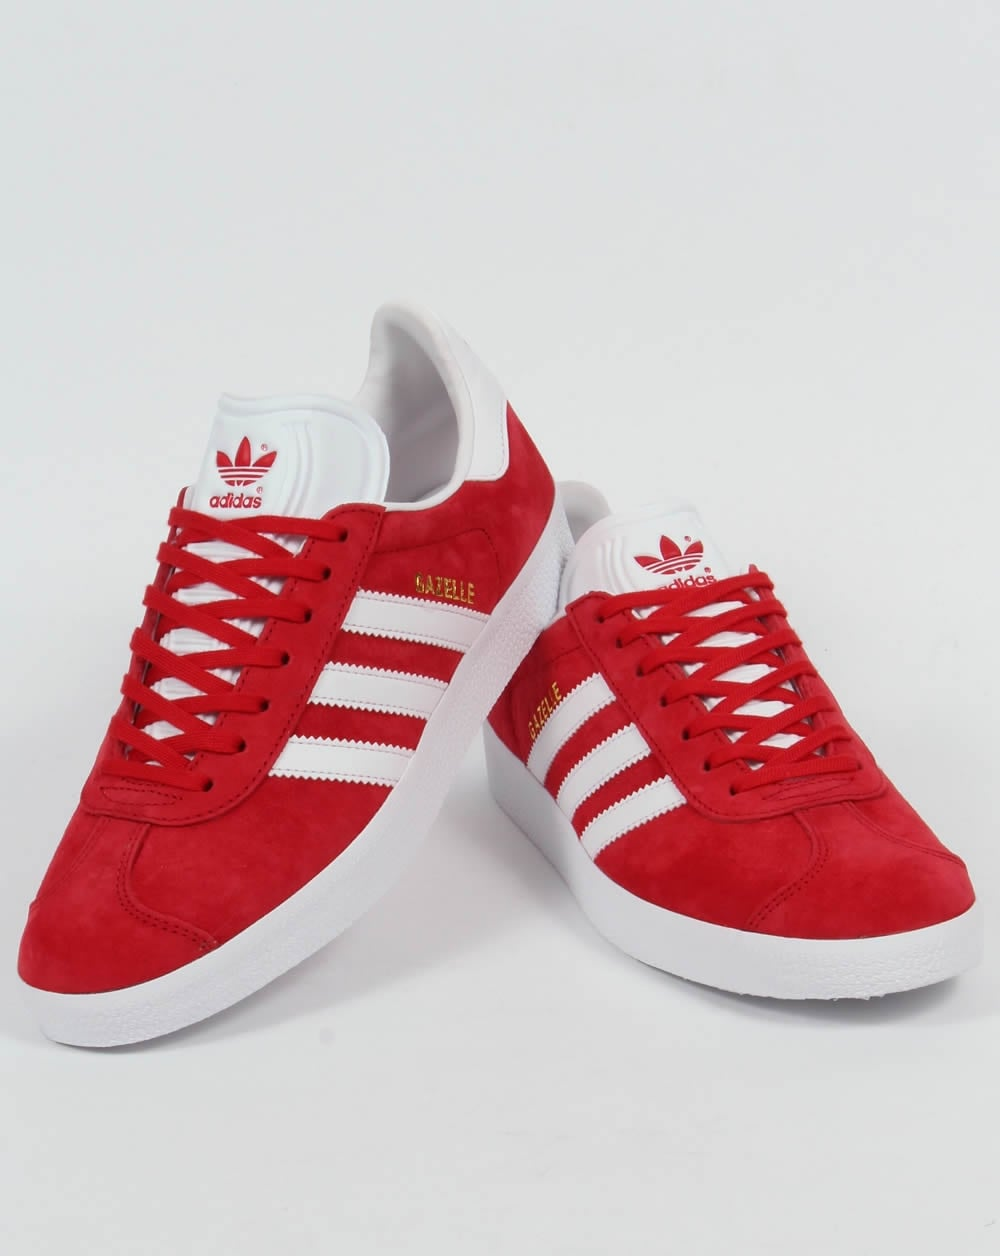 Adidas Gazelle Trainers Power Red White 659bf845f